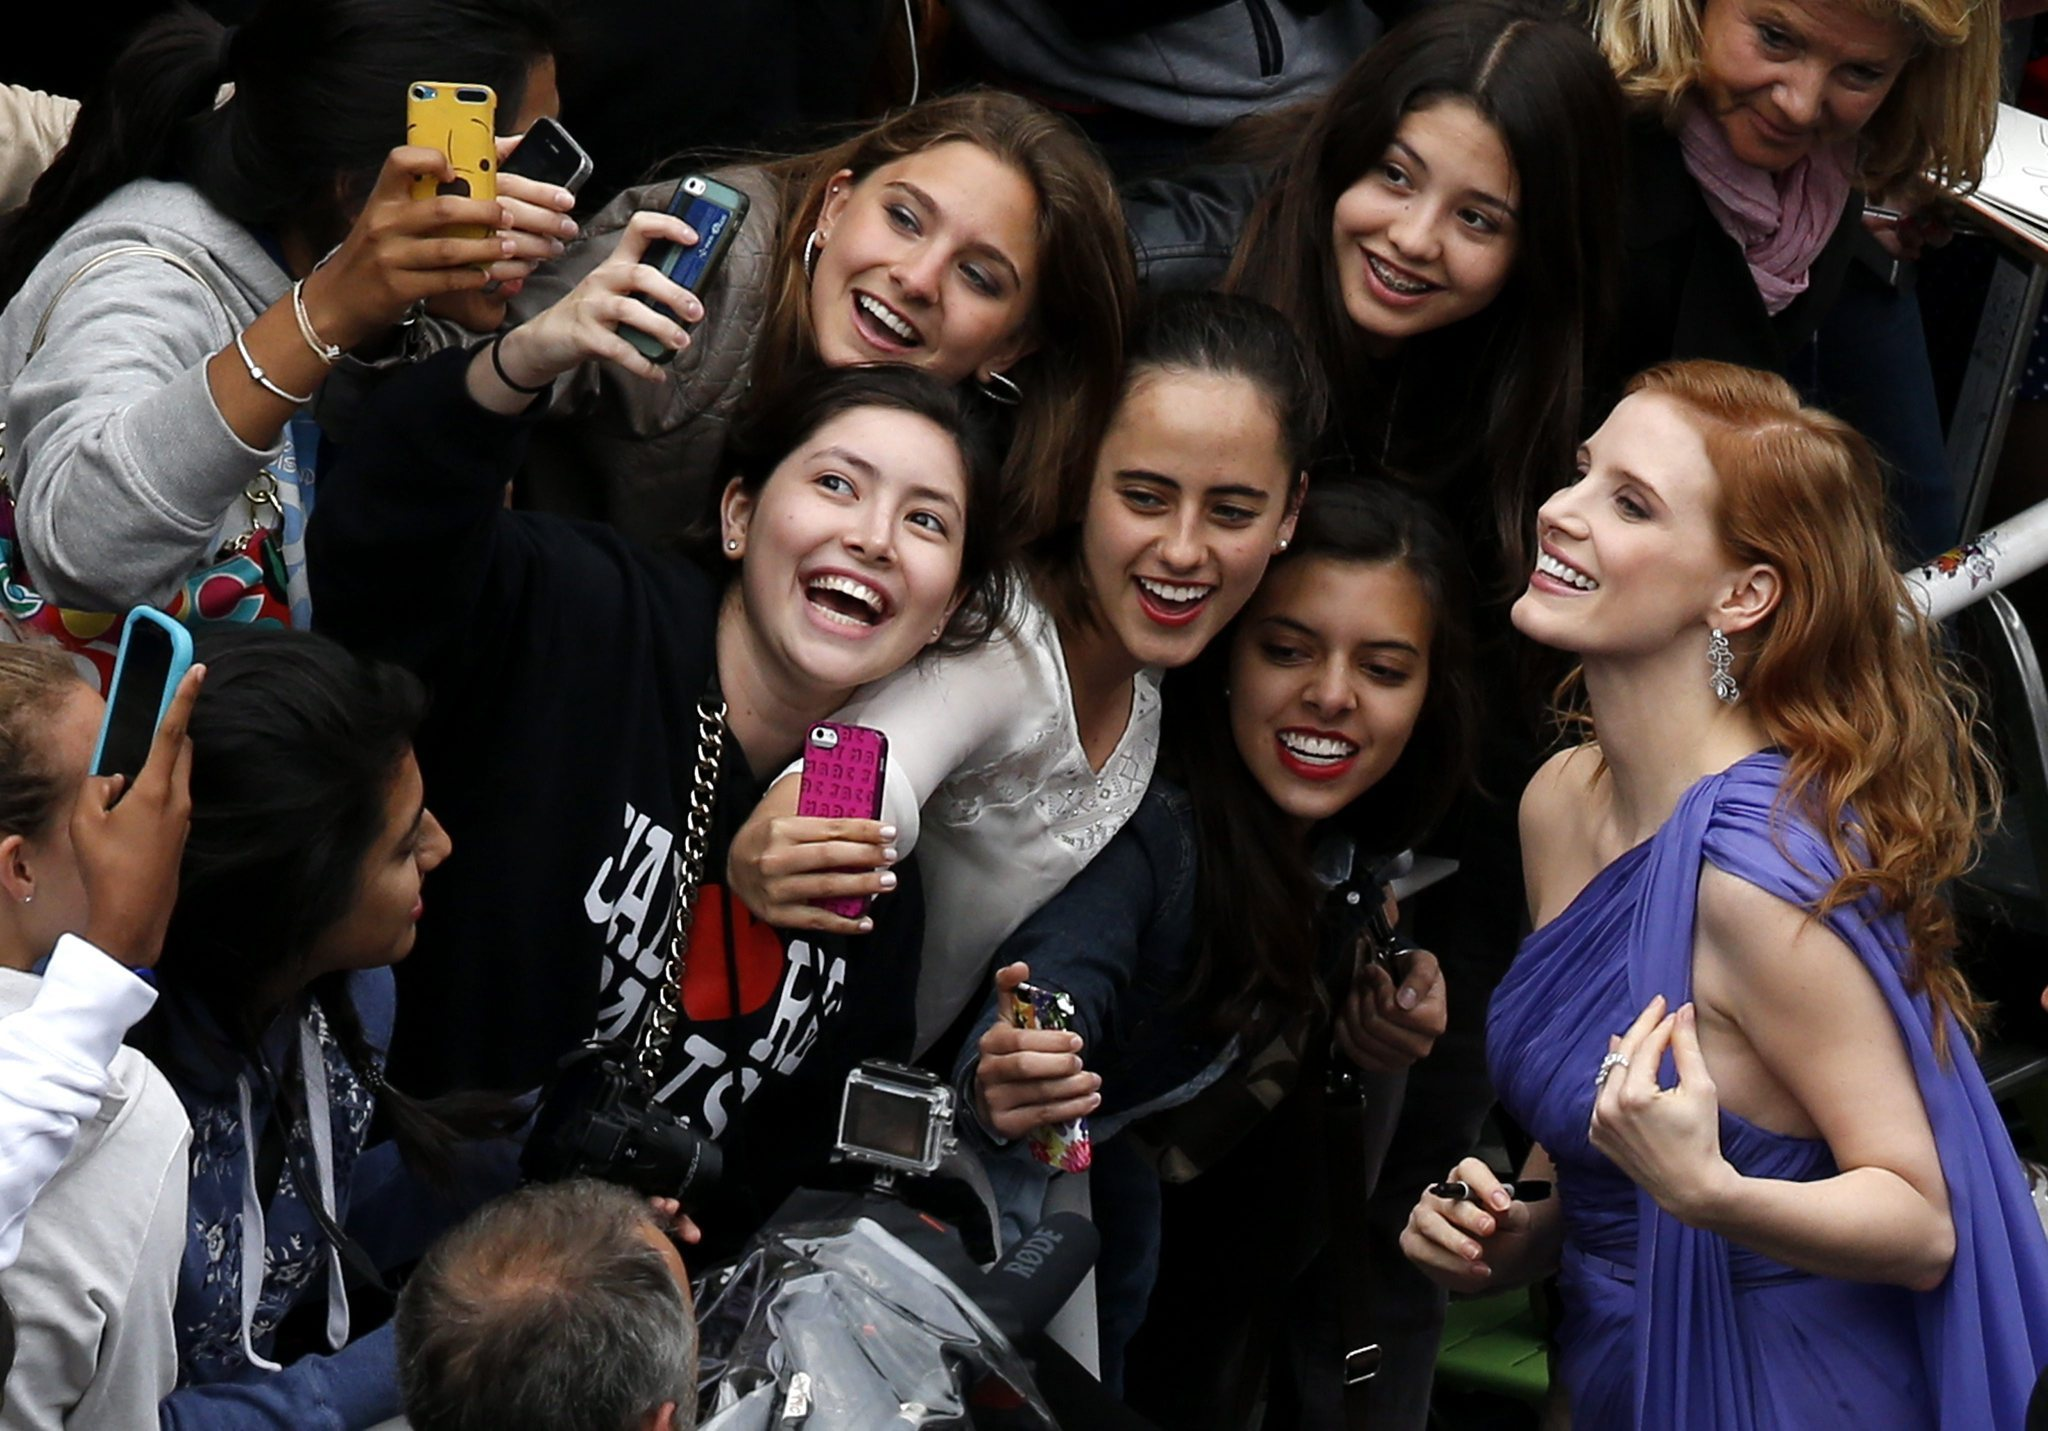 cannes-festival-celebrity-selfie